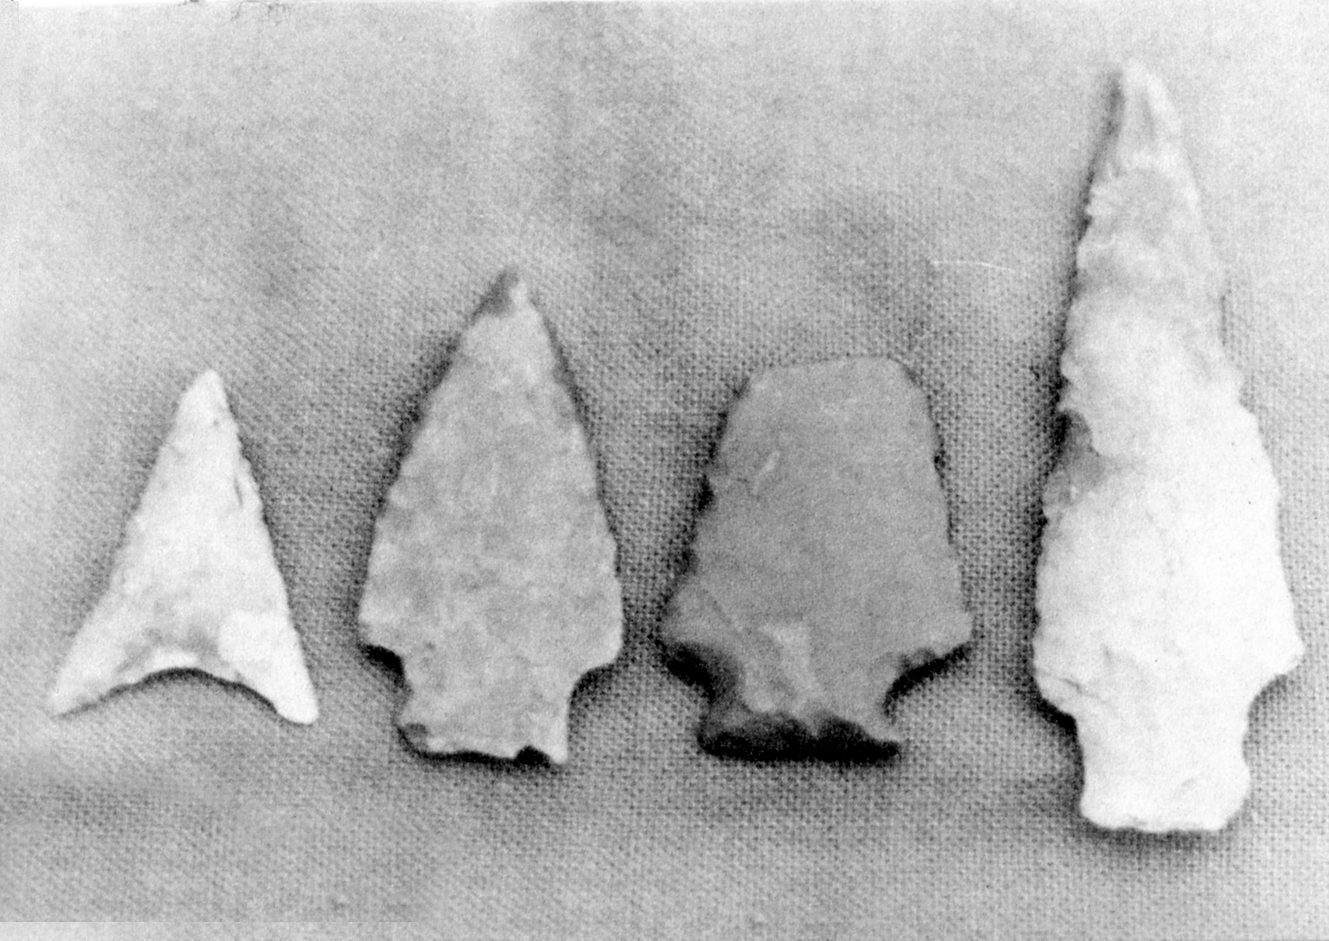 (above) These arrowheads and the axe head are some of the Indian artifacts found along the Rahway River by Rahway residents over the years.